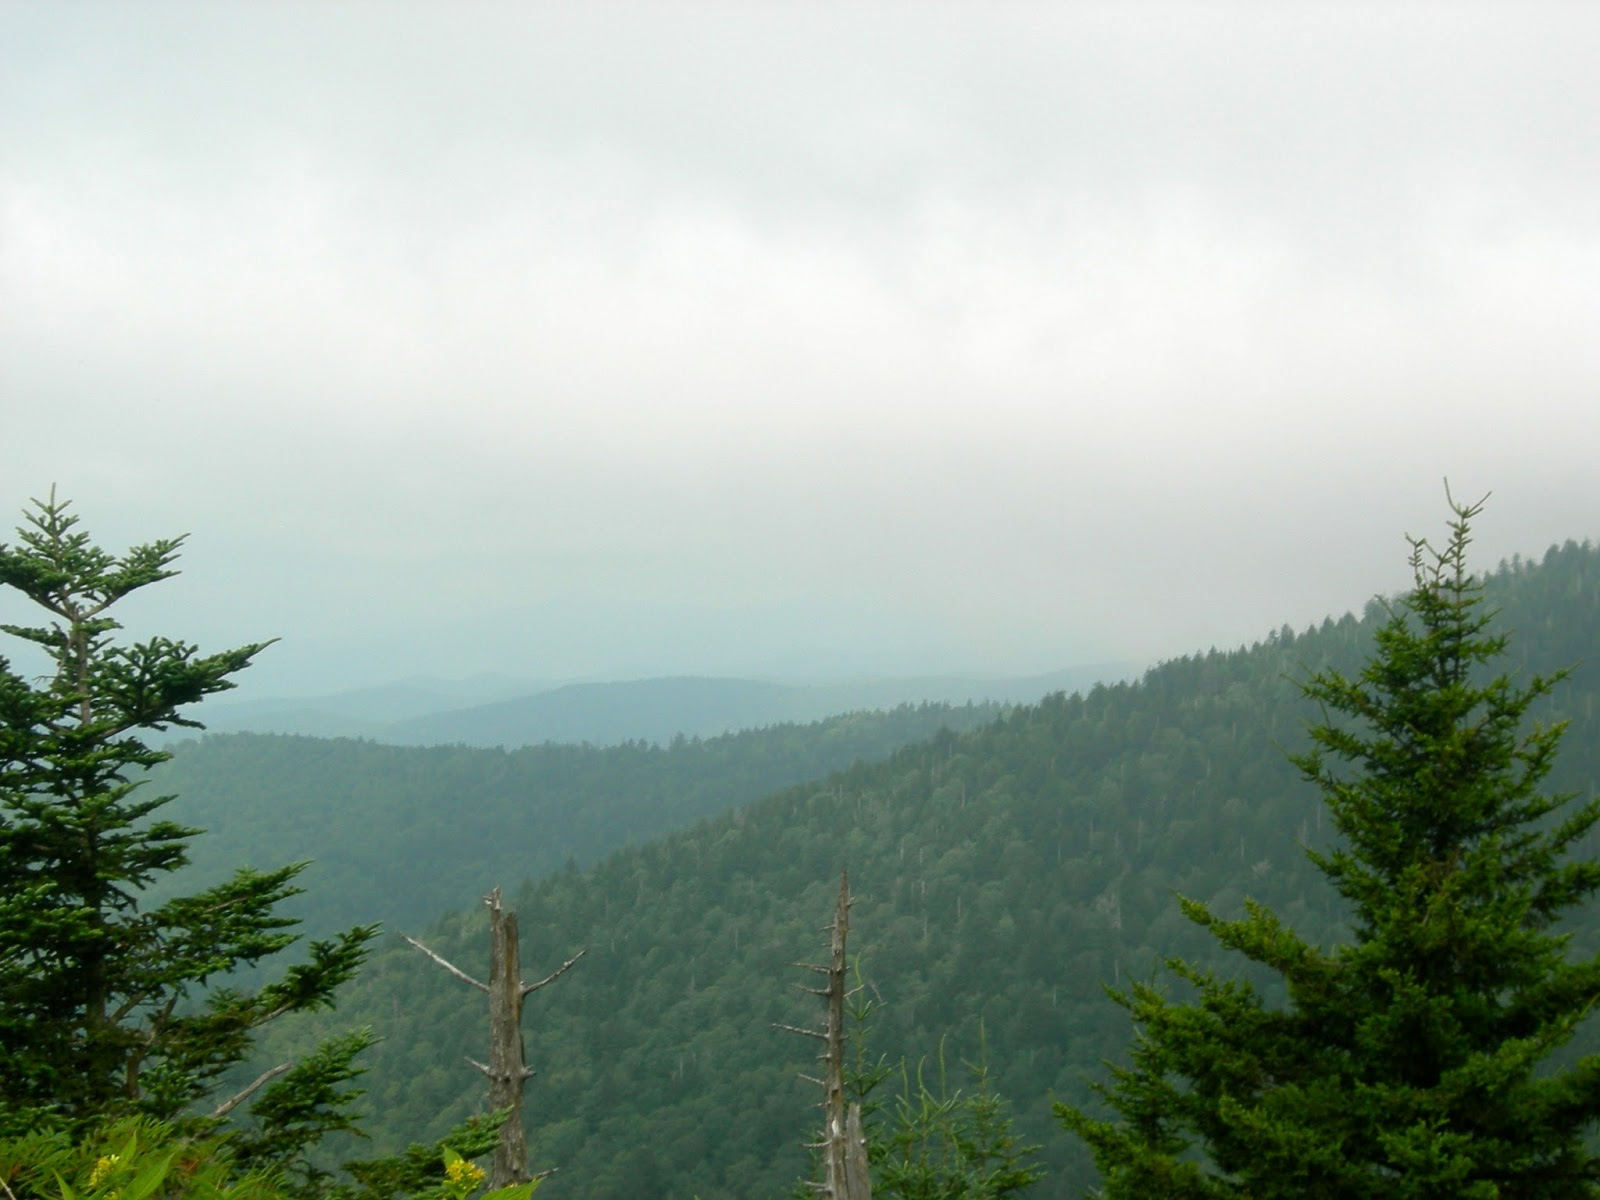 Views from New Found Gap Road - Smoky Mountains - Family Vacations